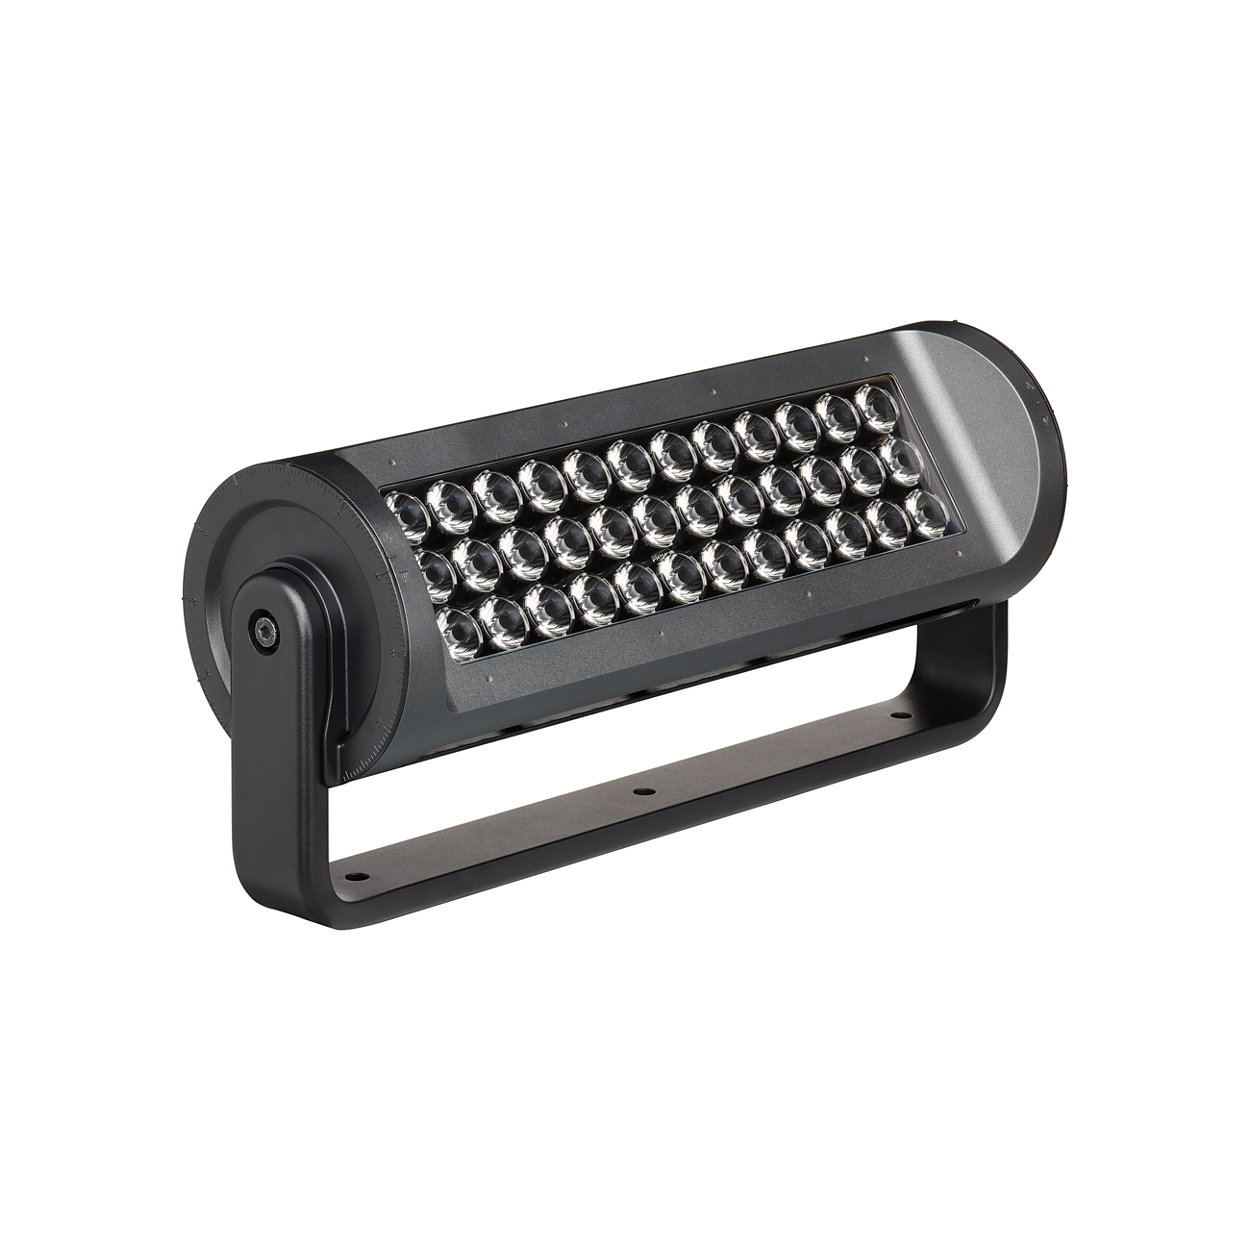 A high-performance long-throw exterior LED luminaire with RGBA or RGBW light